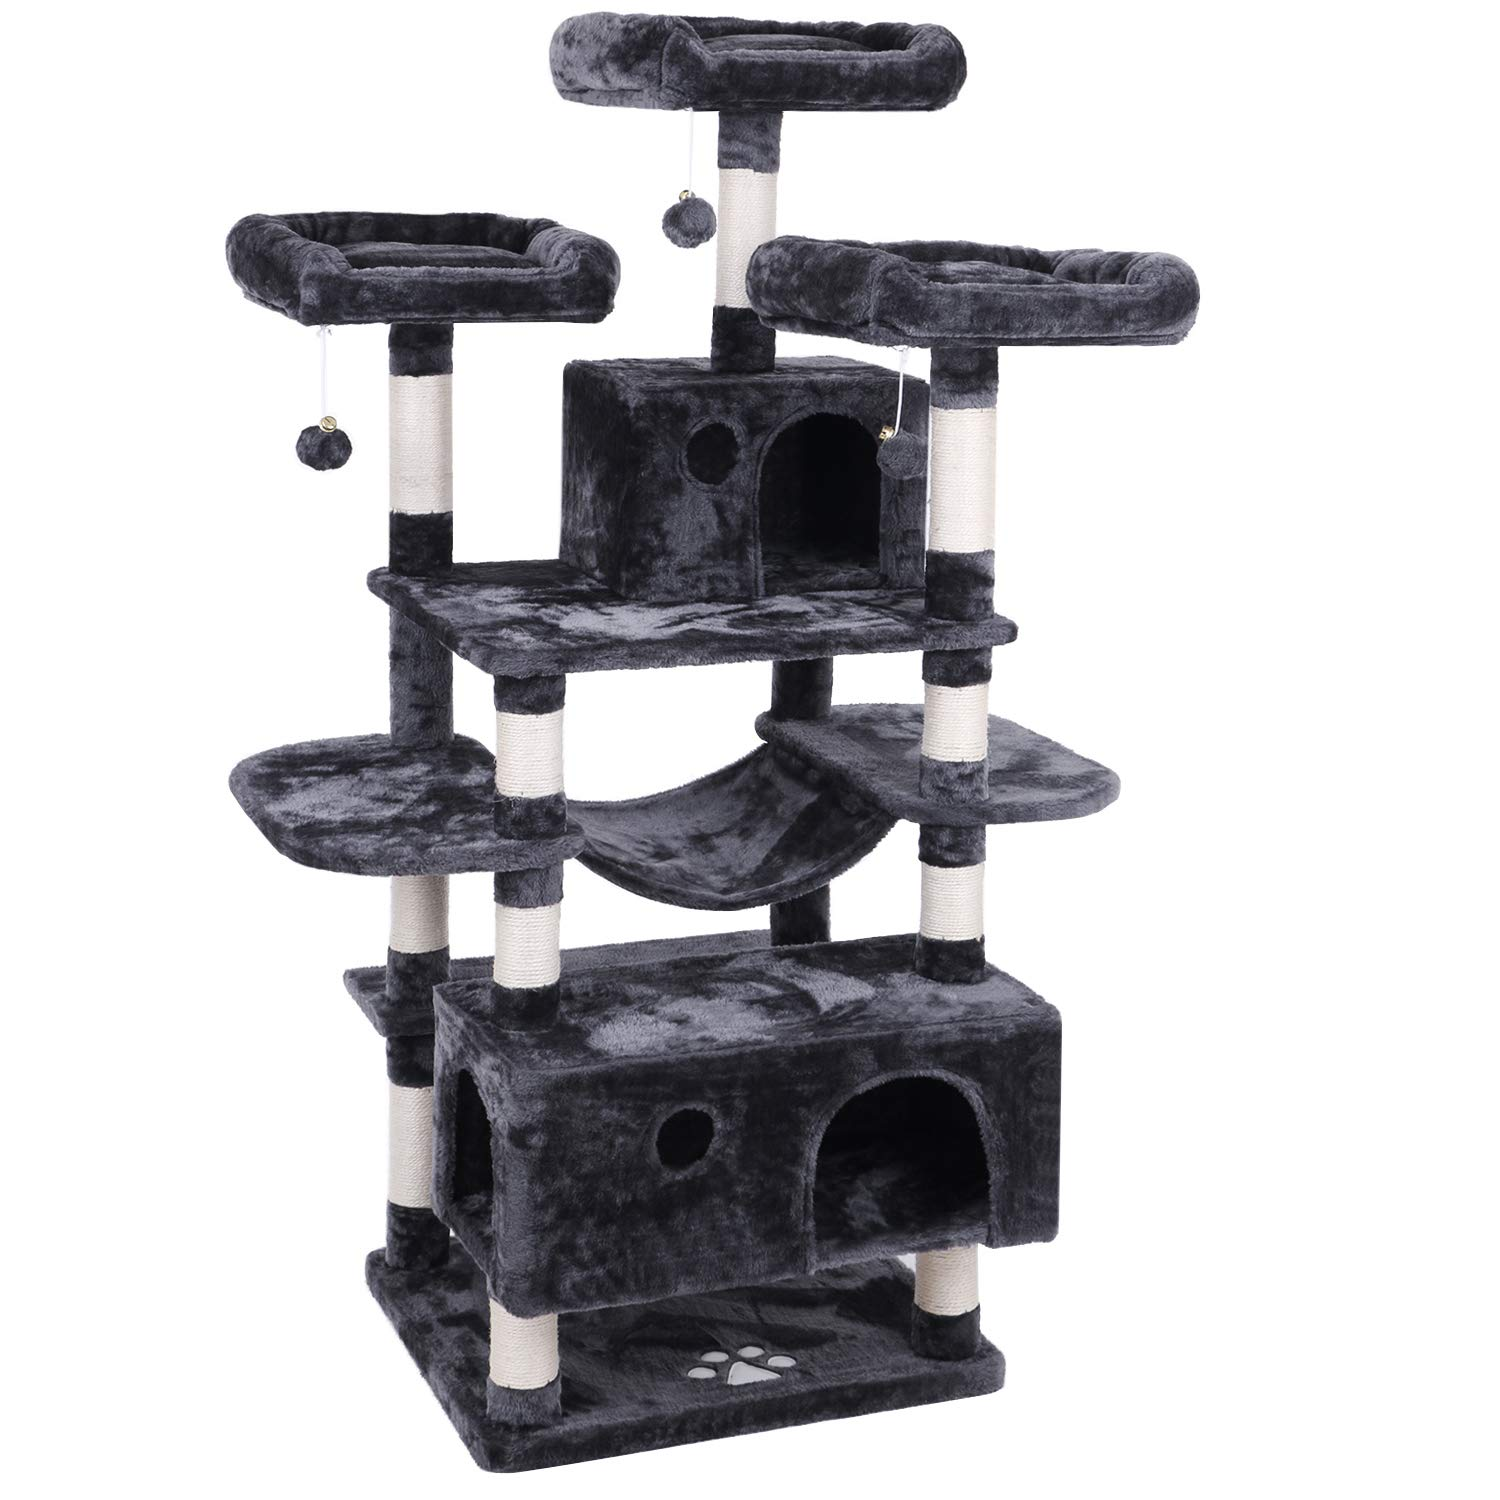 BEWISHOME Large Cat Tree Condo with Sisal Scratching Posts Perches Houses Hammock, Cat Tower Furniture Kitty Activity Center Kitten Play House Grey MMJ03B by BEWISHOME